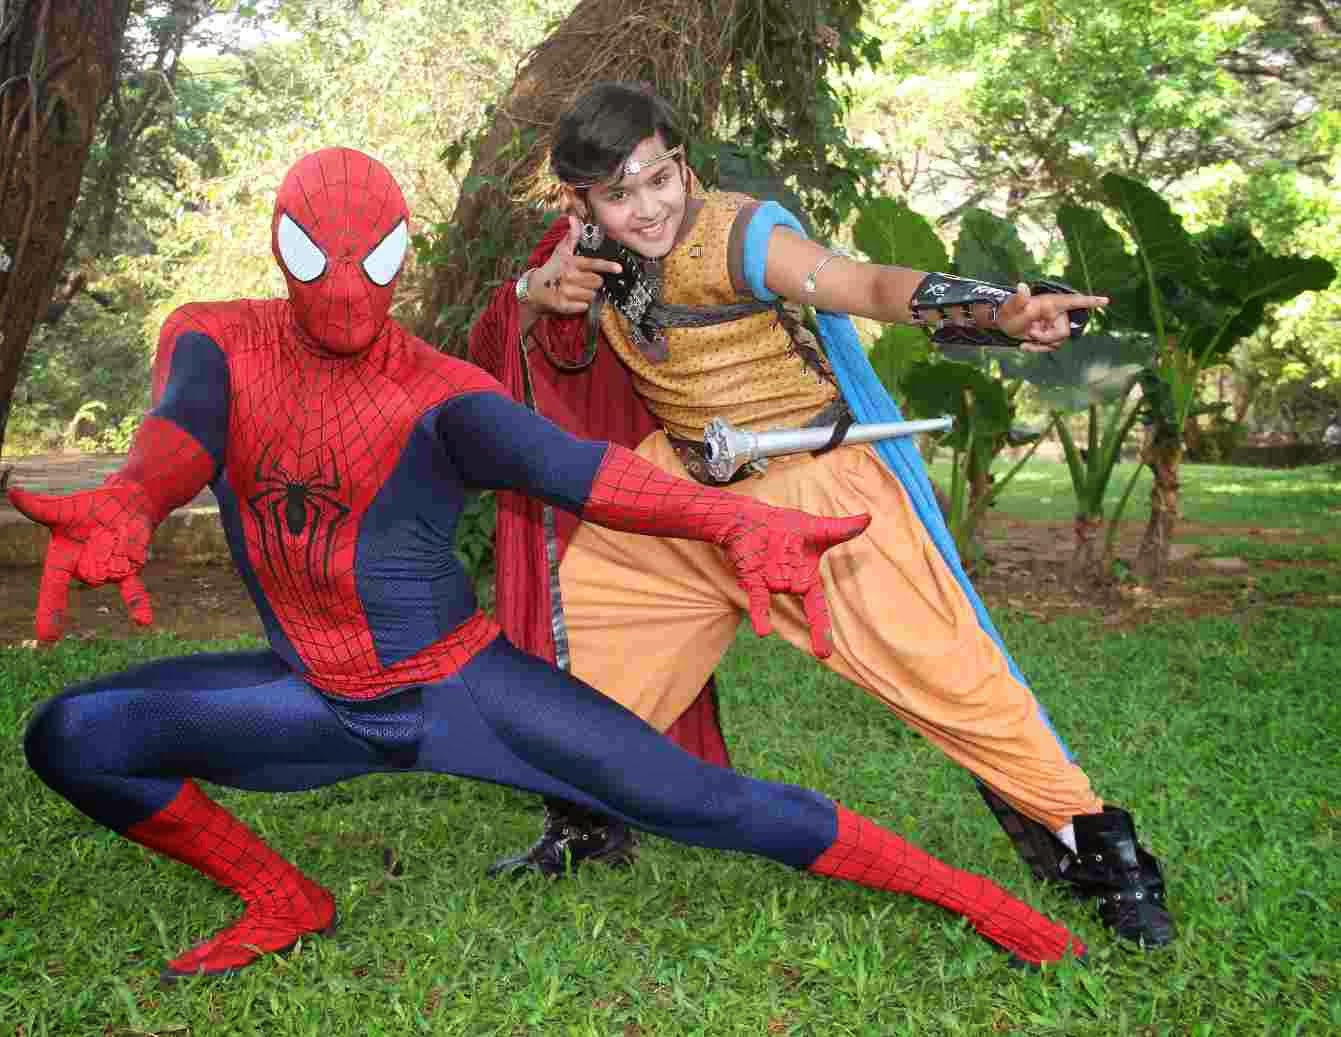 STARFRIDAY : Baal Veer and Spider-Man join forces against evil